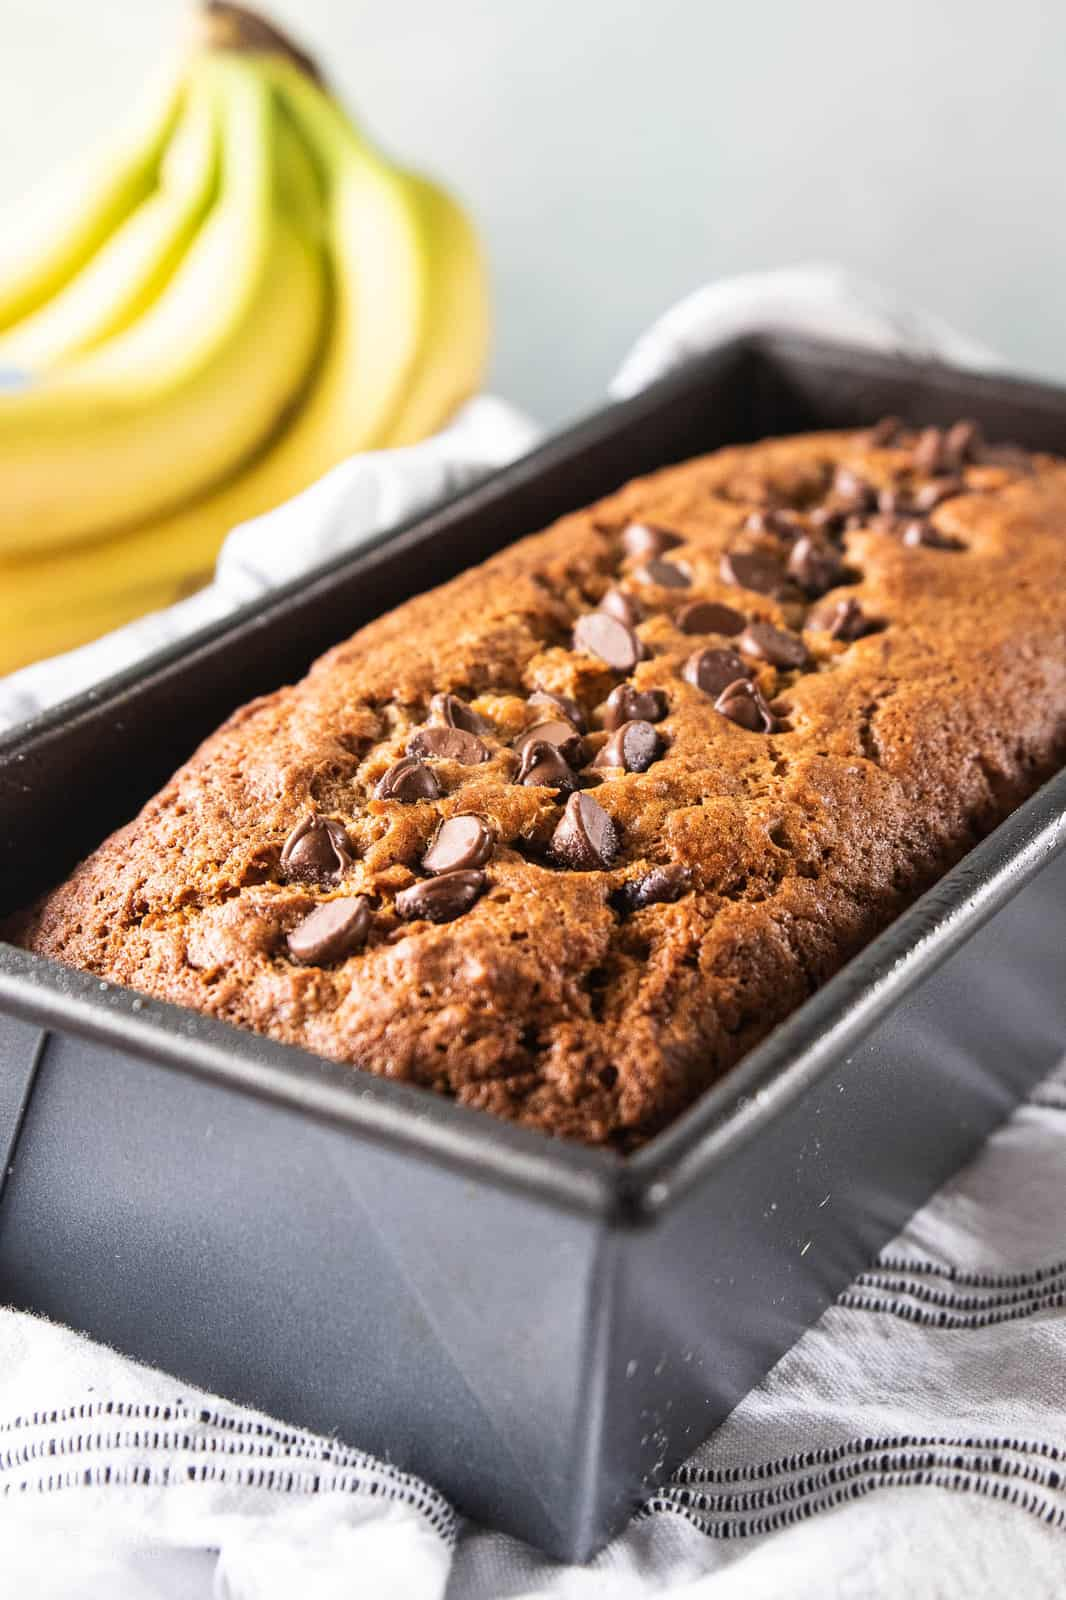 chocolate chip banana bread baked in loaf pan